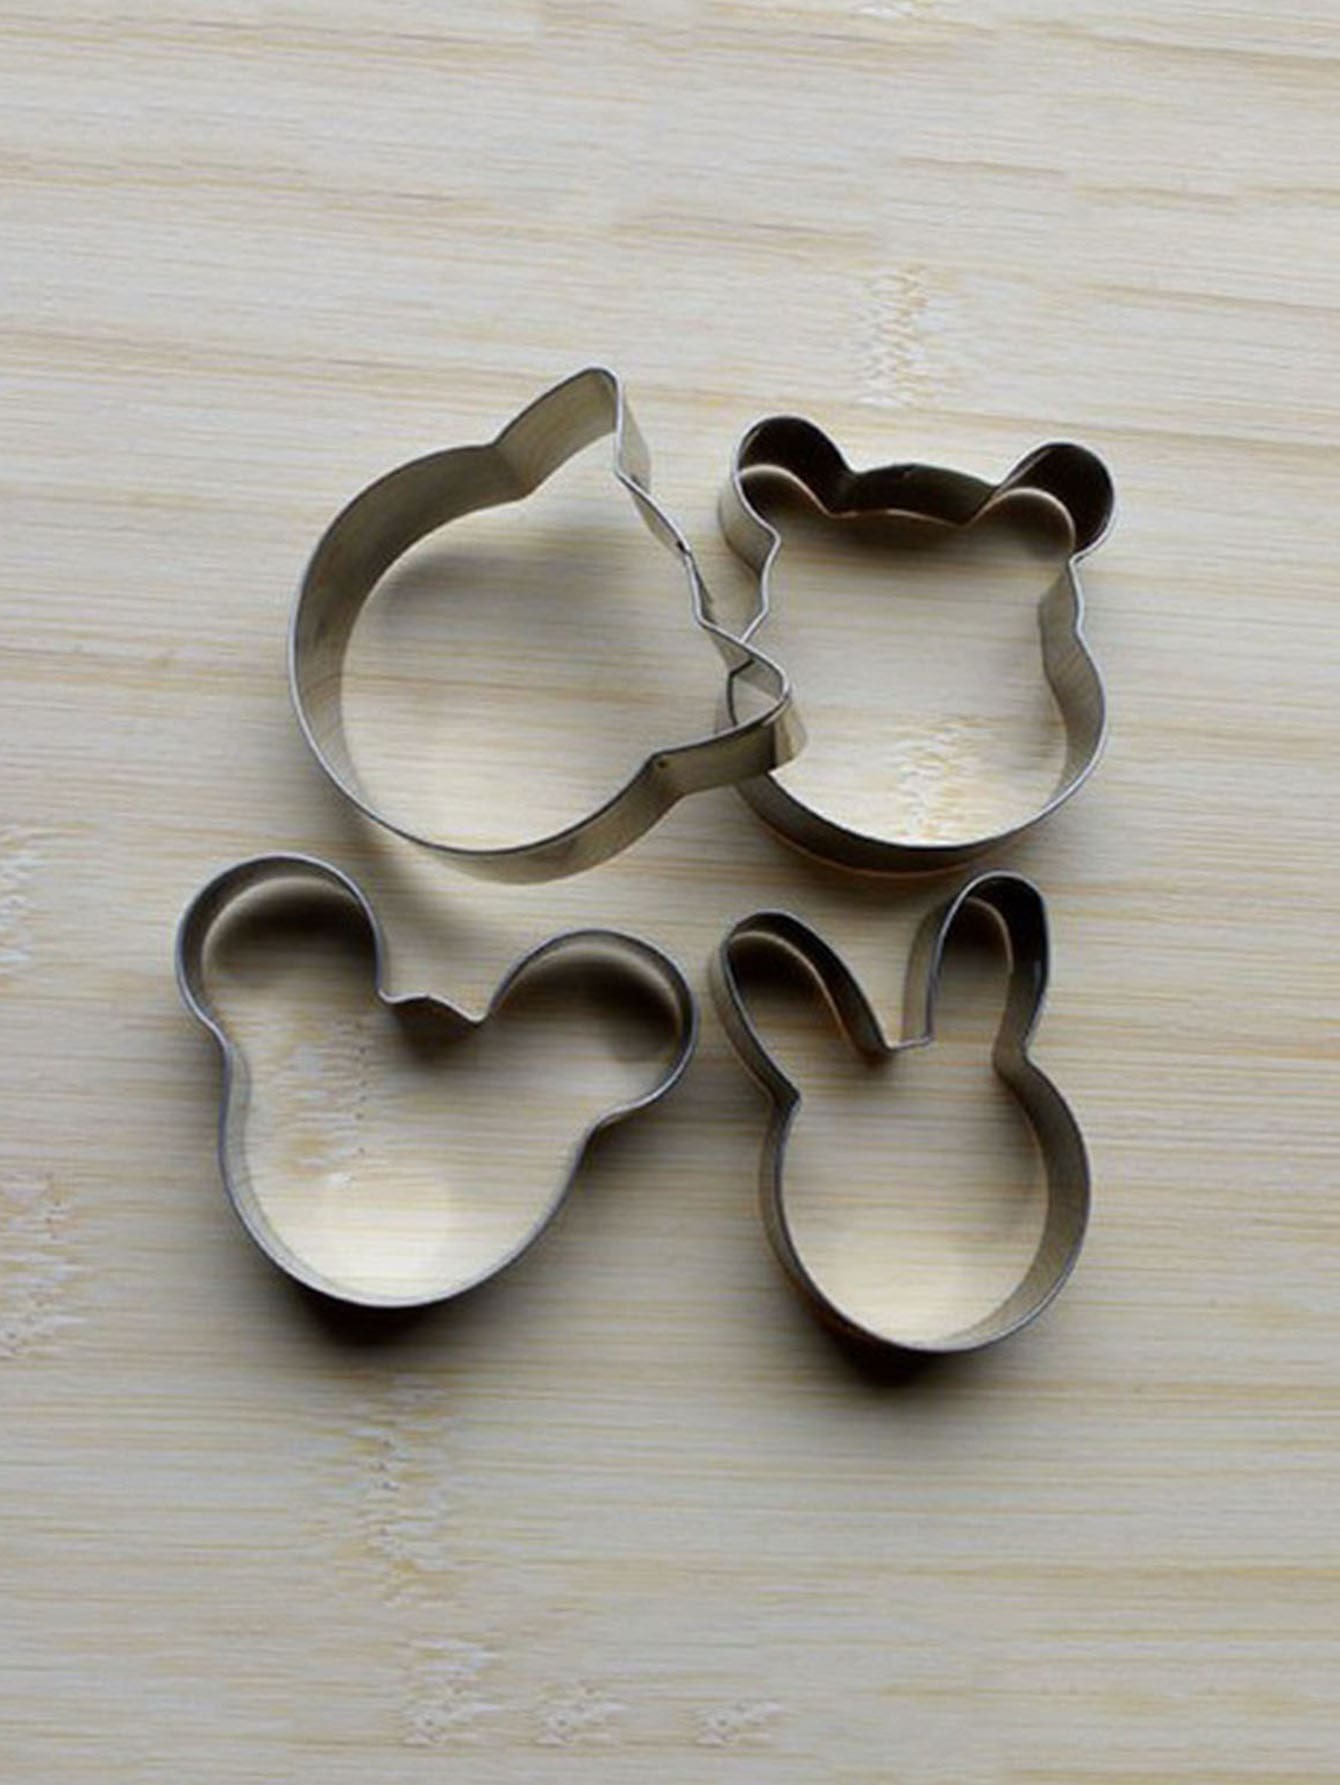 Stainless Steel Animal Cookie Cutter 4pcs stainless steel abs chrysanthemum heart shaped spring cookie cutter